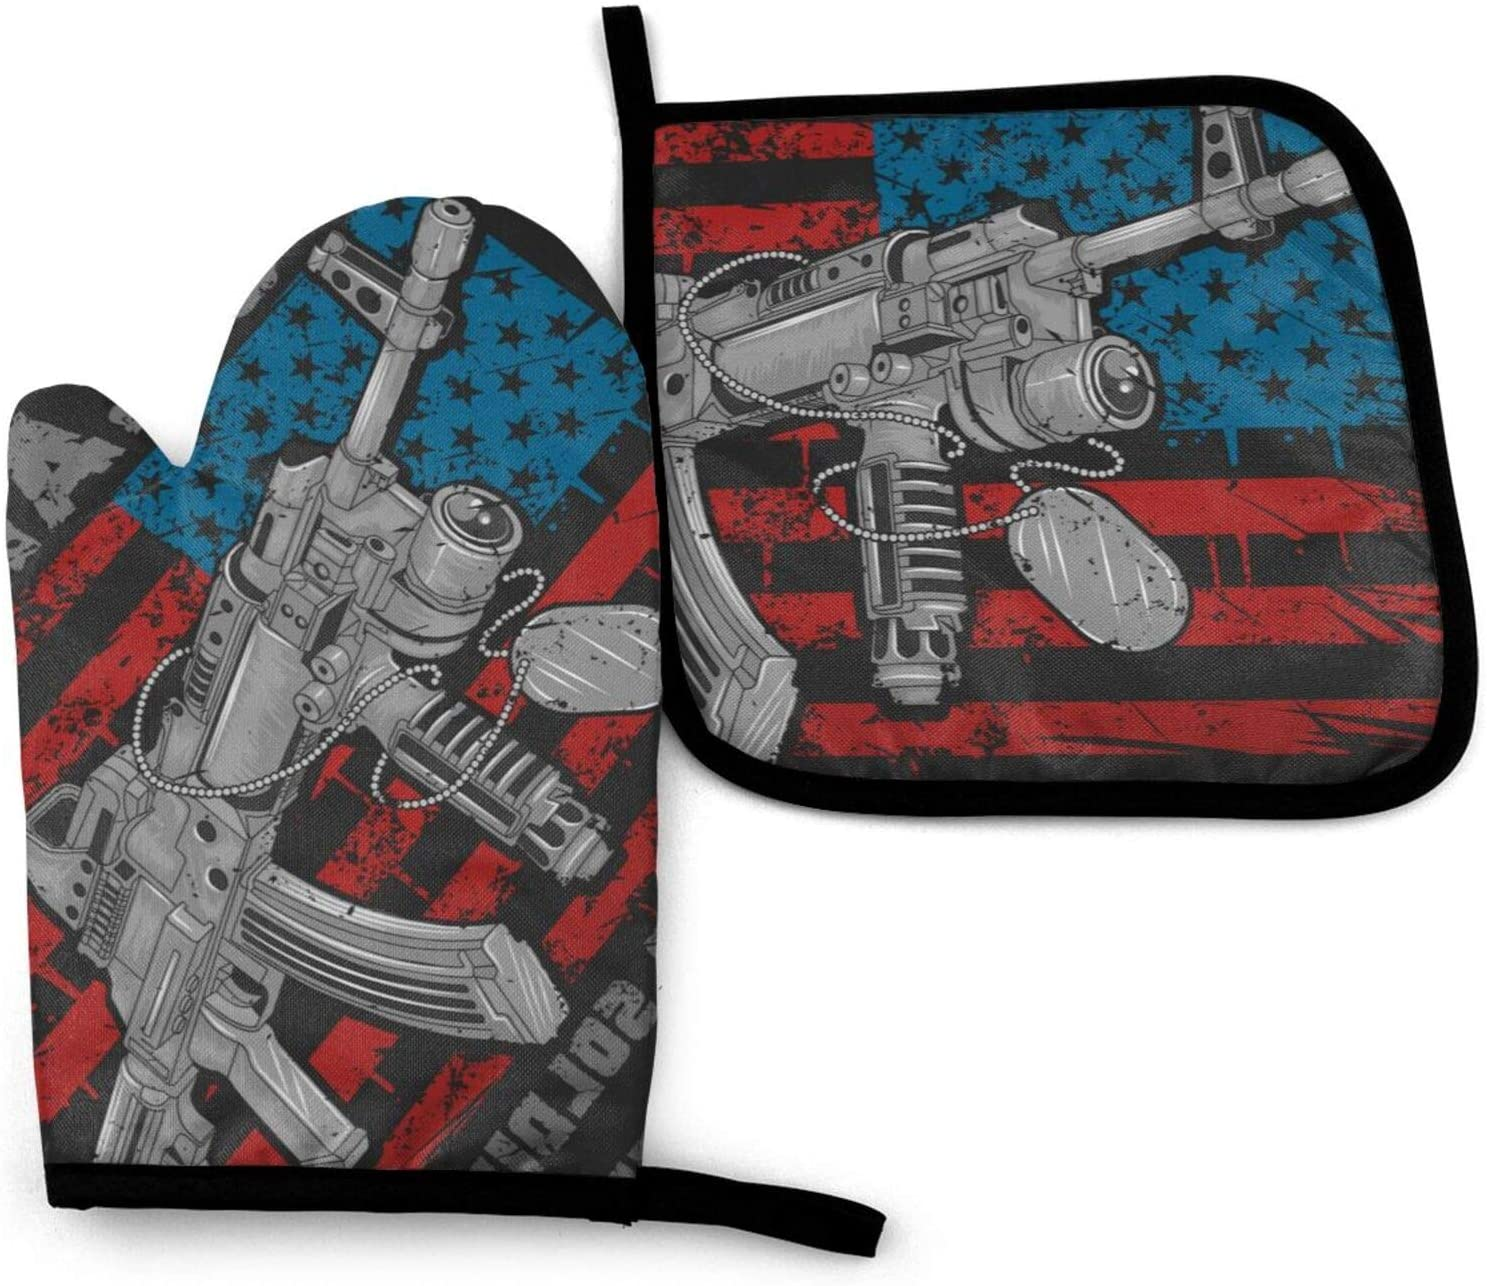 LASWEGA USA America Flag Gun Oven Mitts and Pot Holders Set,Heat Resistant Gloves & Potholder for Cooking,Baking,Grilling,Serving,BBQ Or Dinner Party,Decorative Kitchen Gift